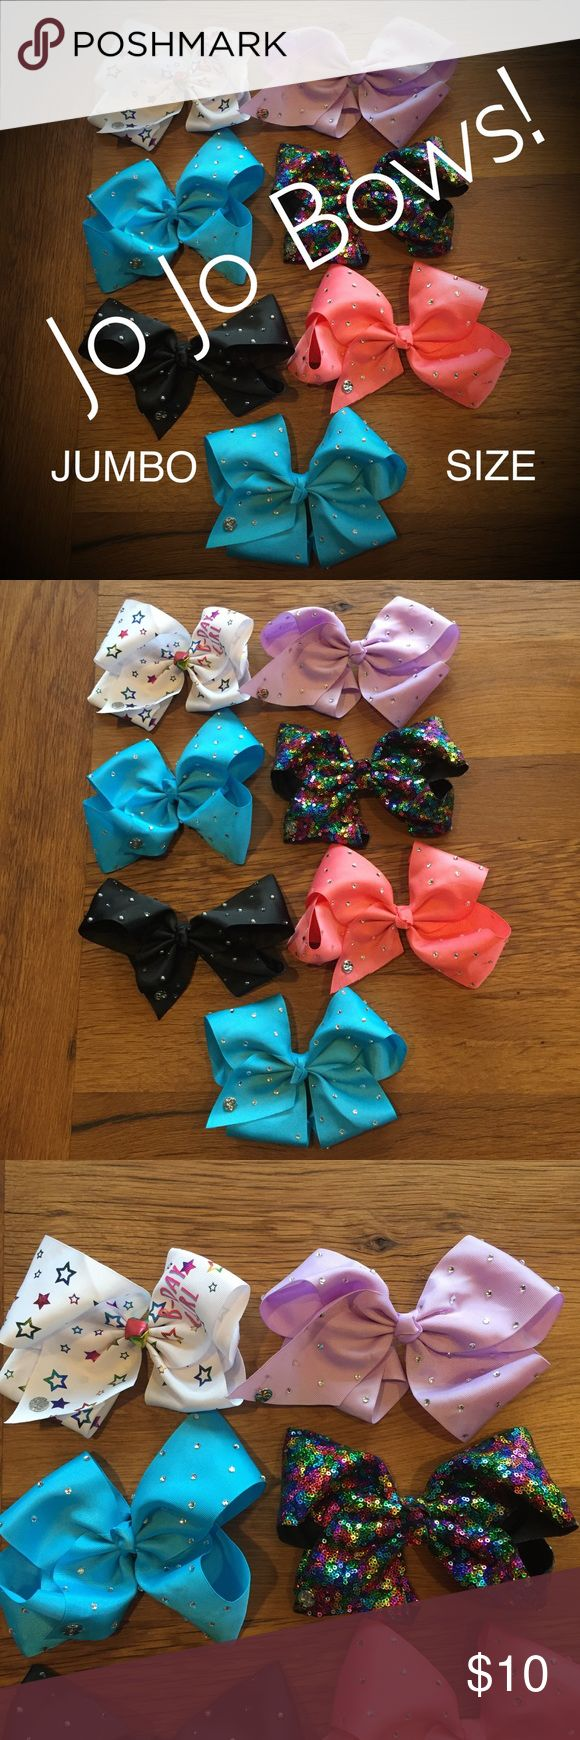 🎀Jo Jo Bows, JUMBO SIZE, Various colors. These are the large jo jo siwa bows that all the cheerleaders and dancers are wearing! Originally bought at Claire's or Justice for $15 each. Only worn a few times. Excellent like-new! Jo Jo Siwa Accessories Hair Accessories